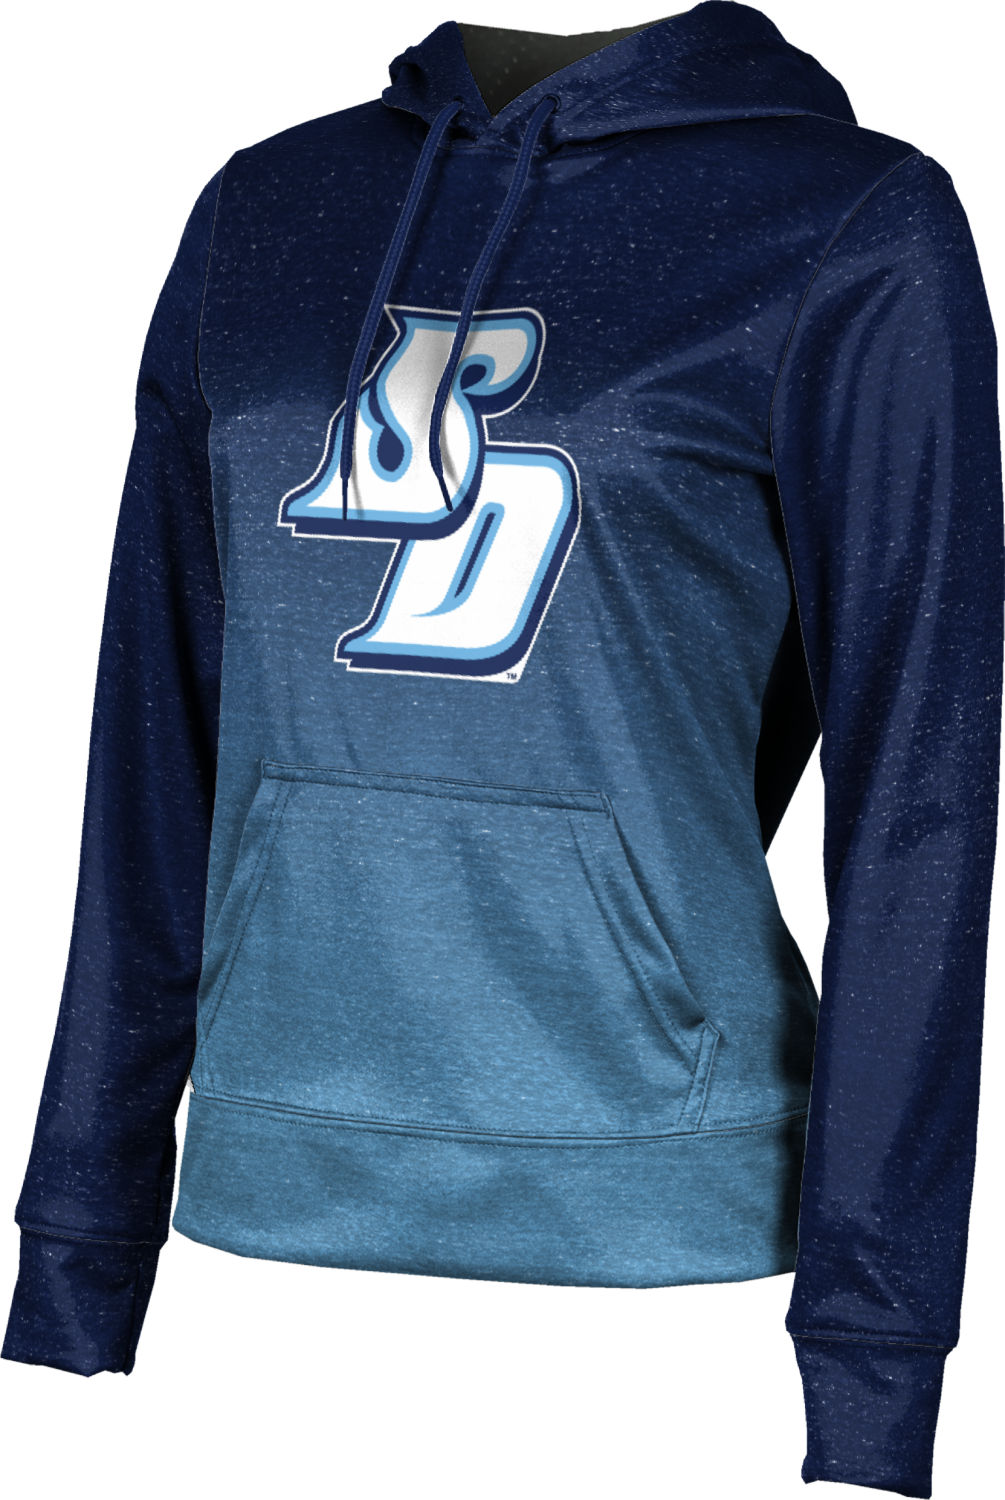 ProSphere Men/'s University of San Diego Ombre Pullover Hoodie USD